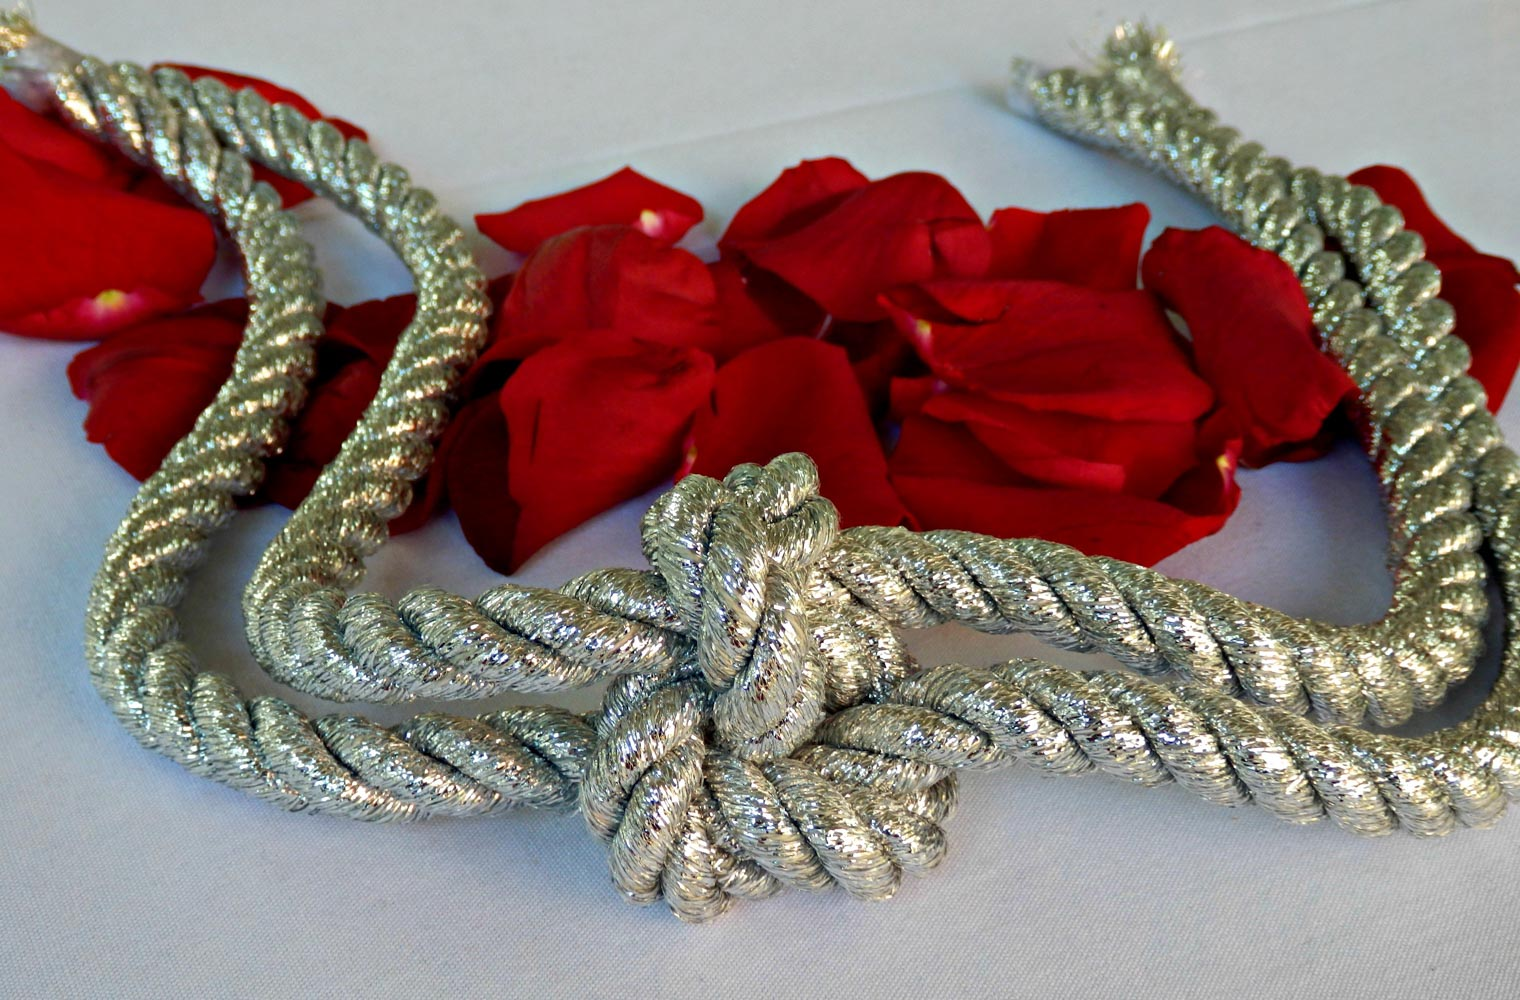 Silver lovers' knot and red rose petals